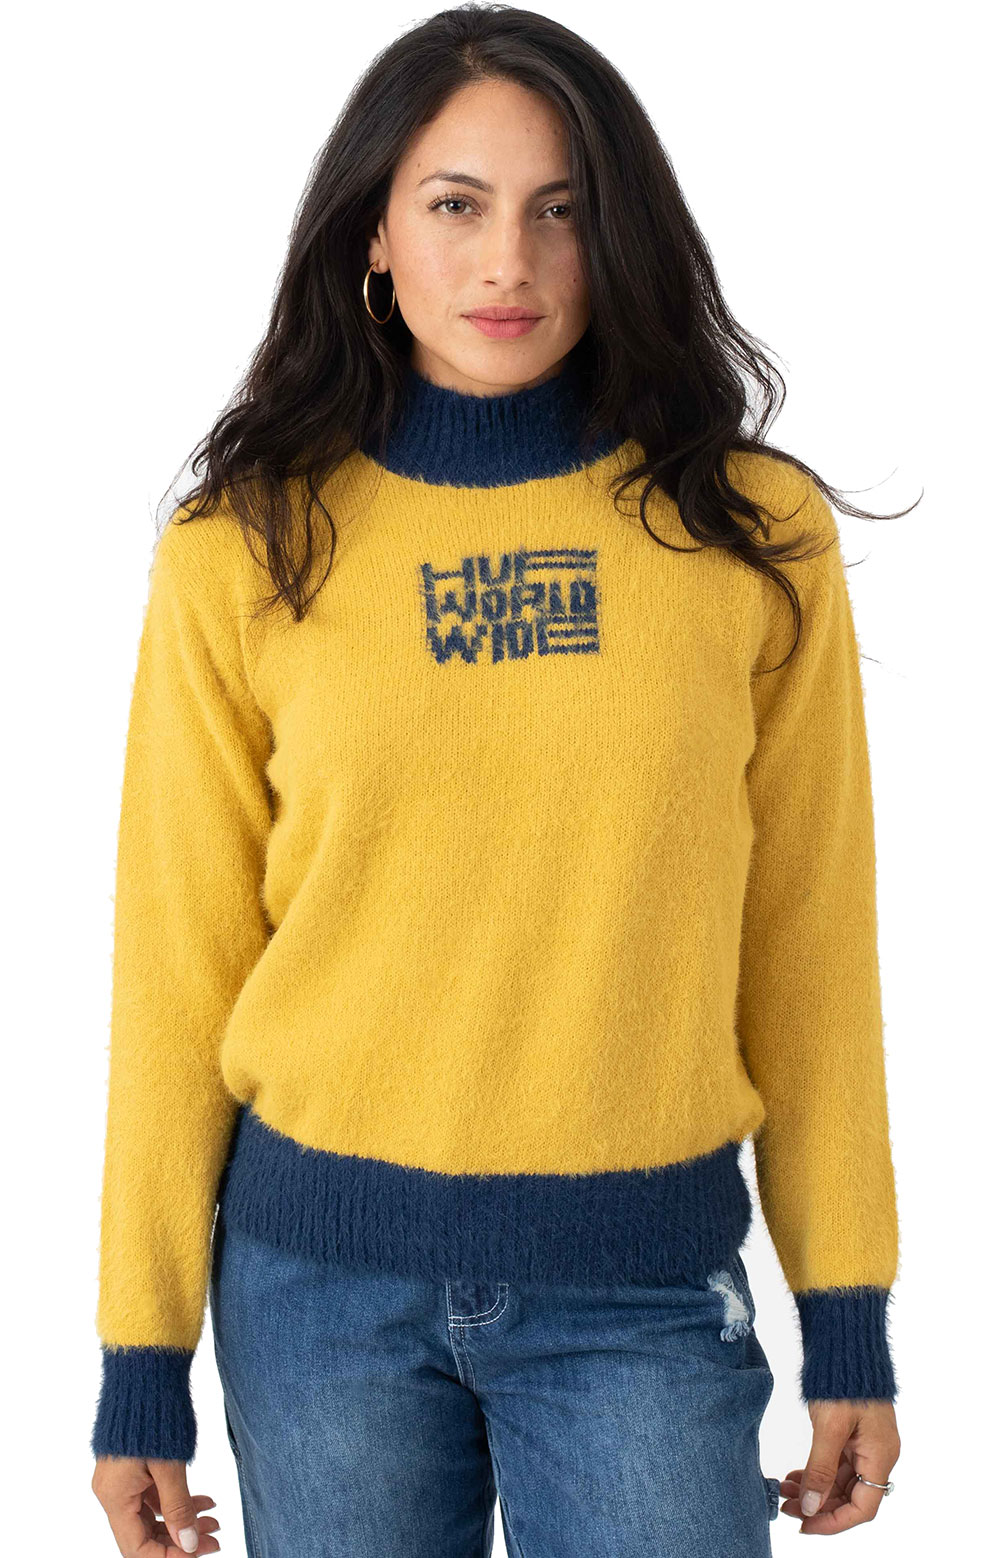 Disorder Jacquared Knit Sweater - Gold